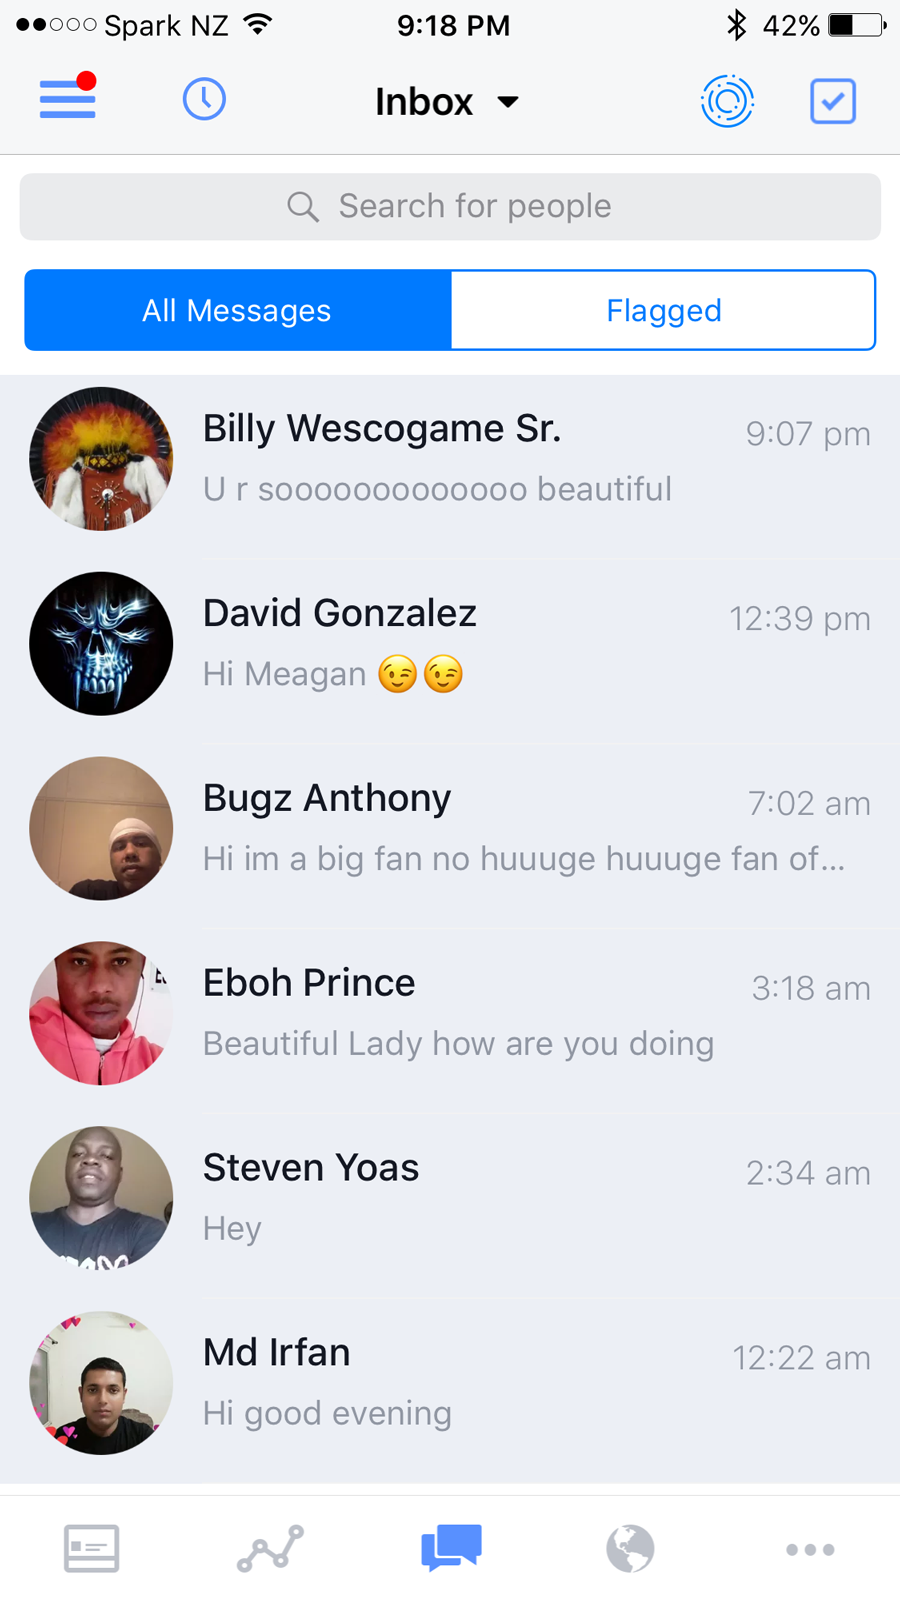 Online harassment: this is what my inbox looks like on a regular basis